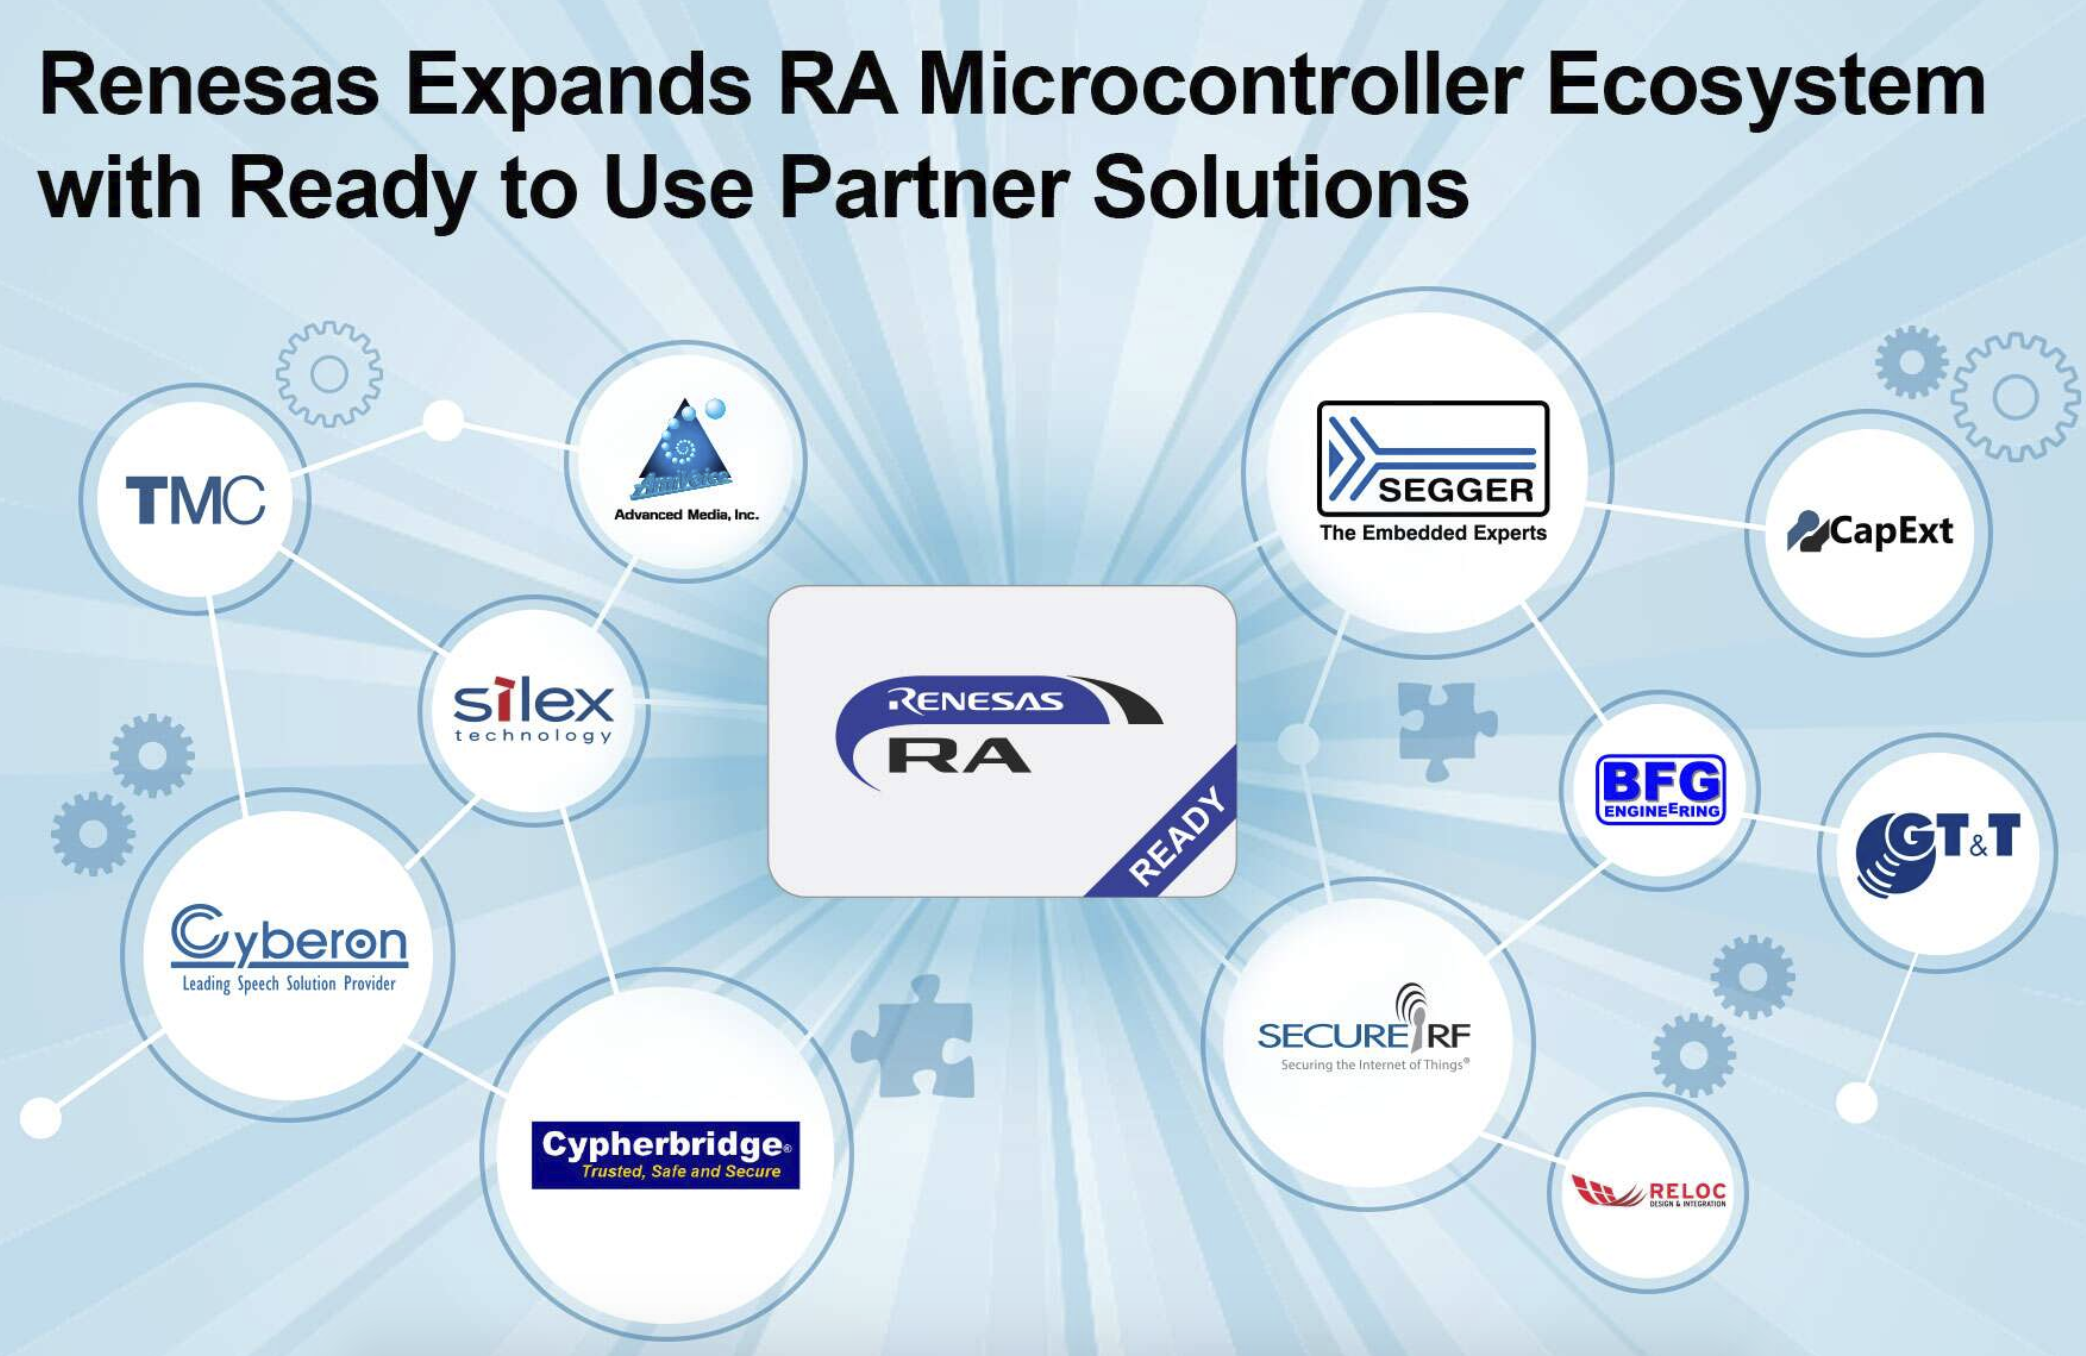 Renesas Electronics Expands RA Microcontroller Ecosystem with Ready to Use Partner Solutions